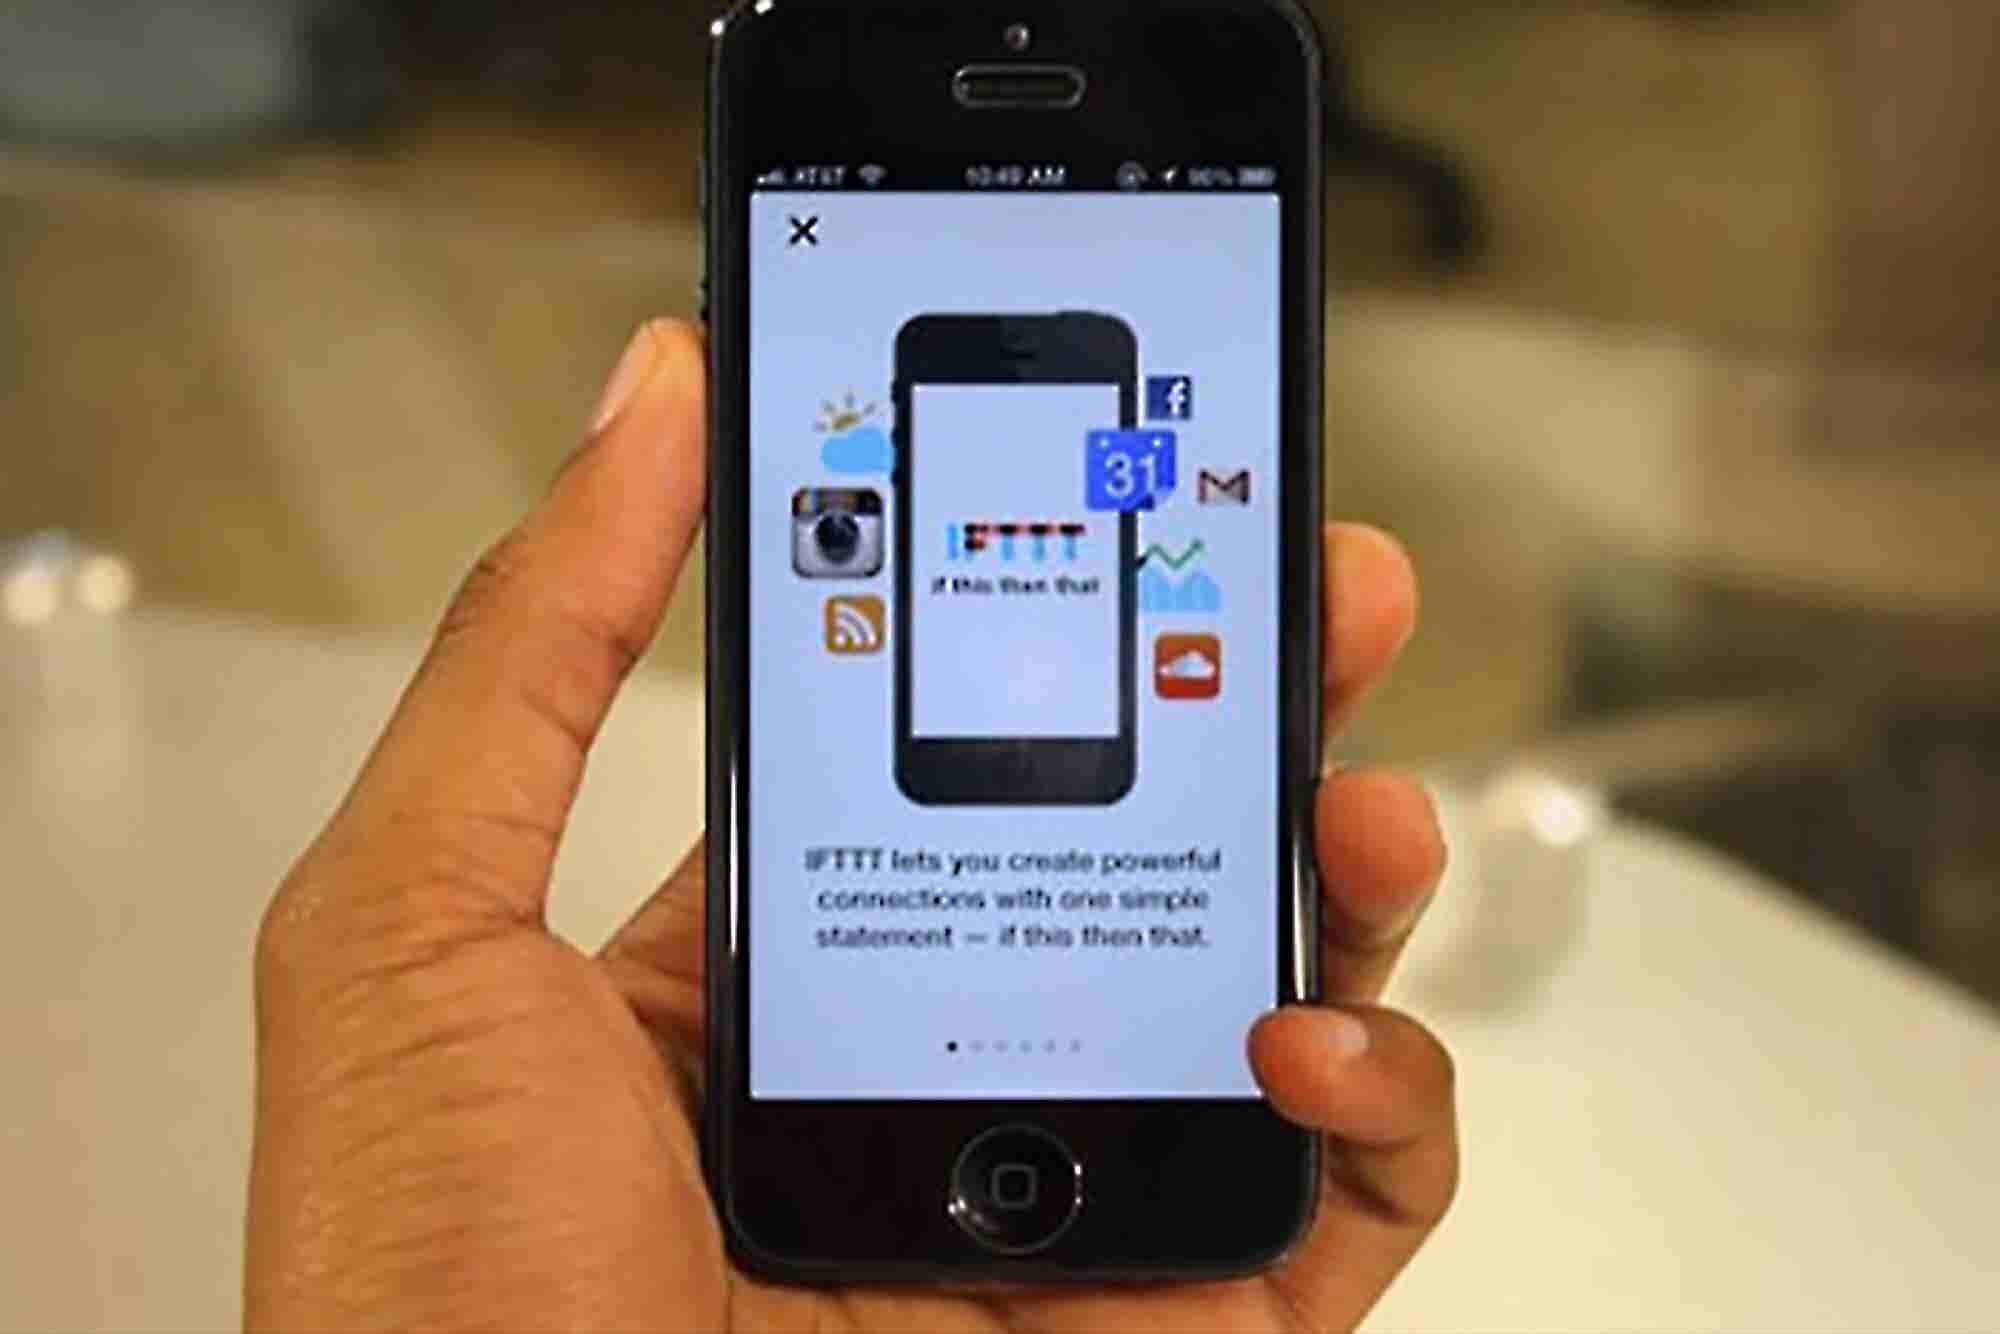 This New App Completely Automates Your iPhone